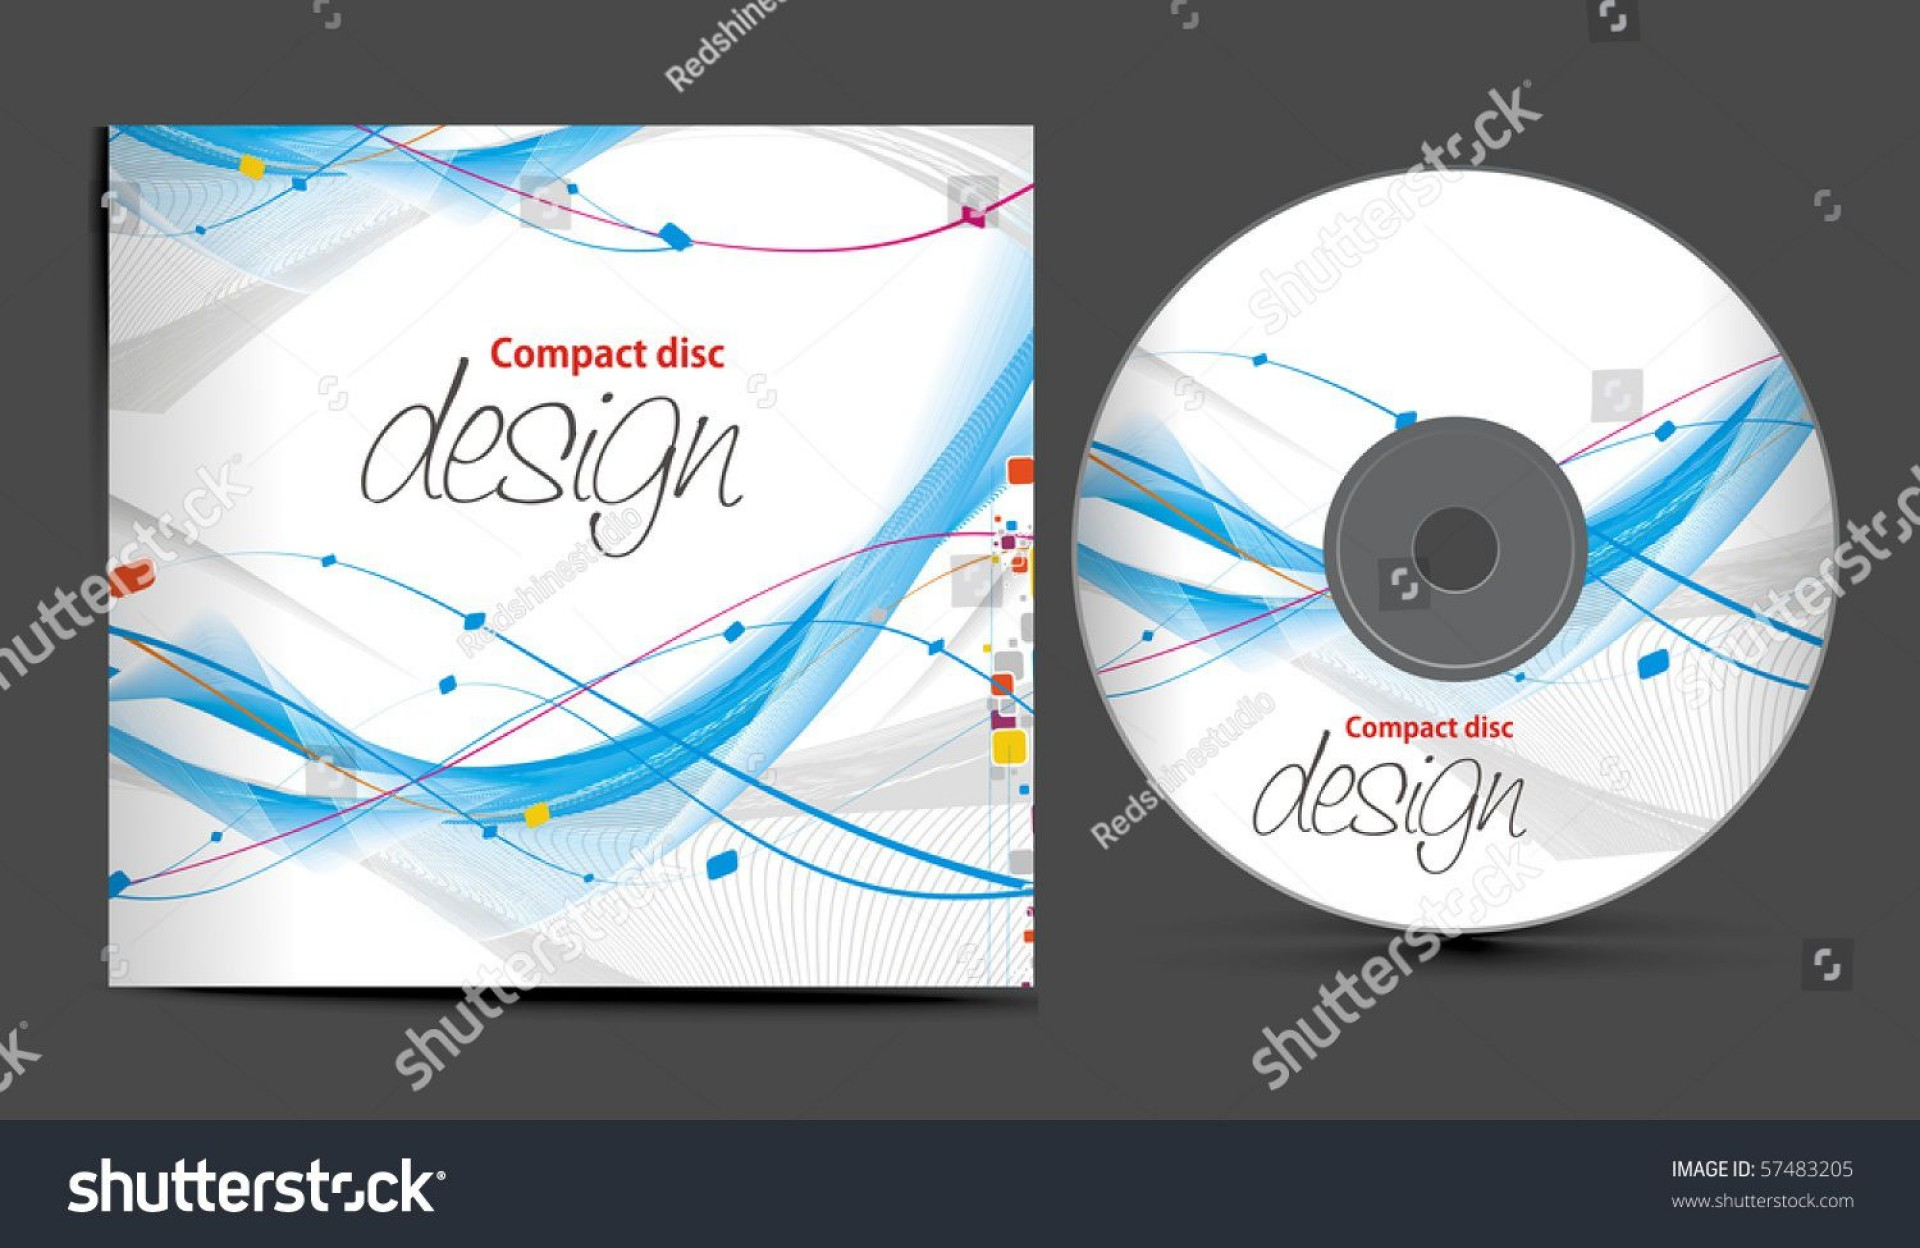 009 Stunning Cd Cover Design Template Highest Quality  Free Vector Illustration Word Psd Download1920